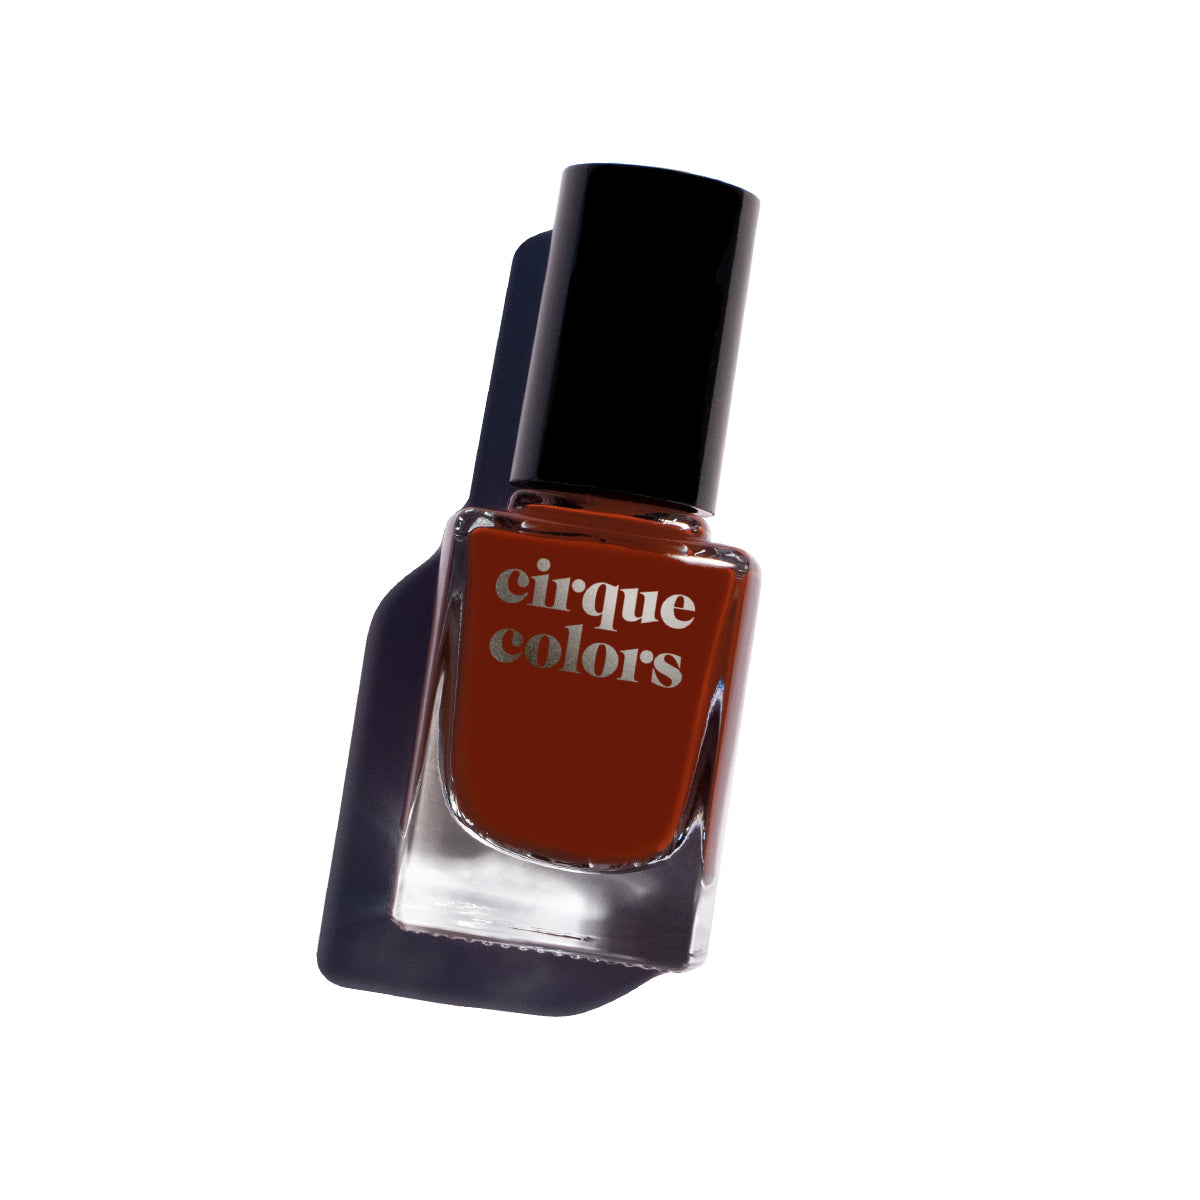 Cirque Colors - Famous Original